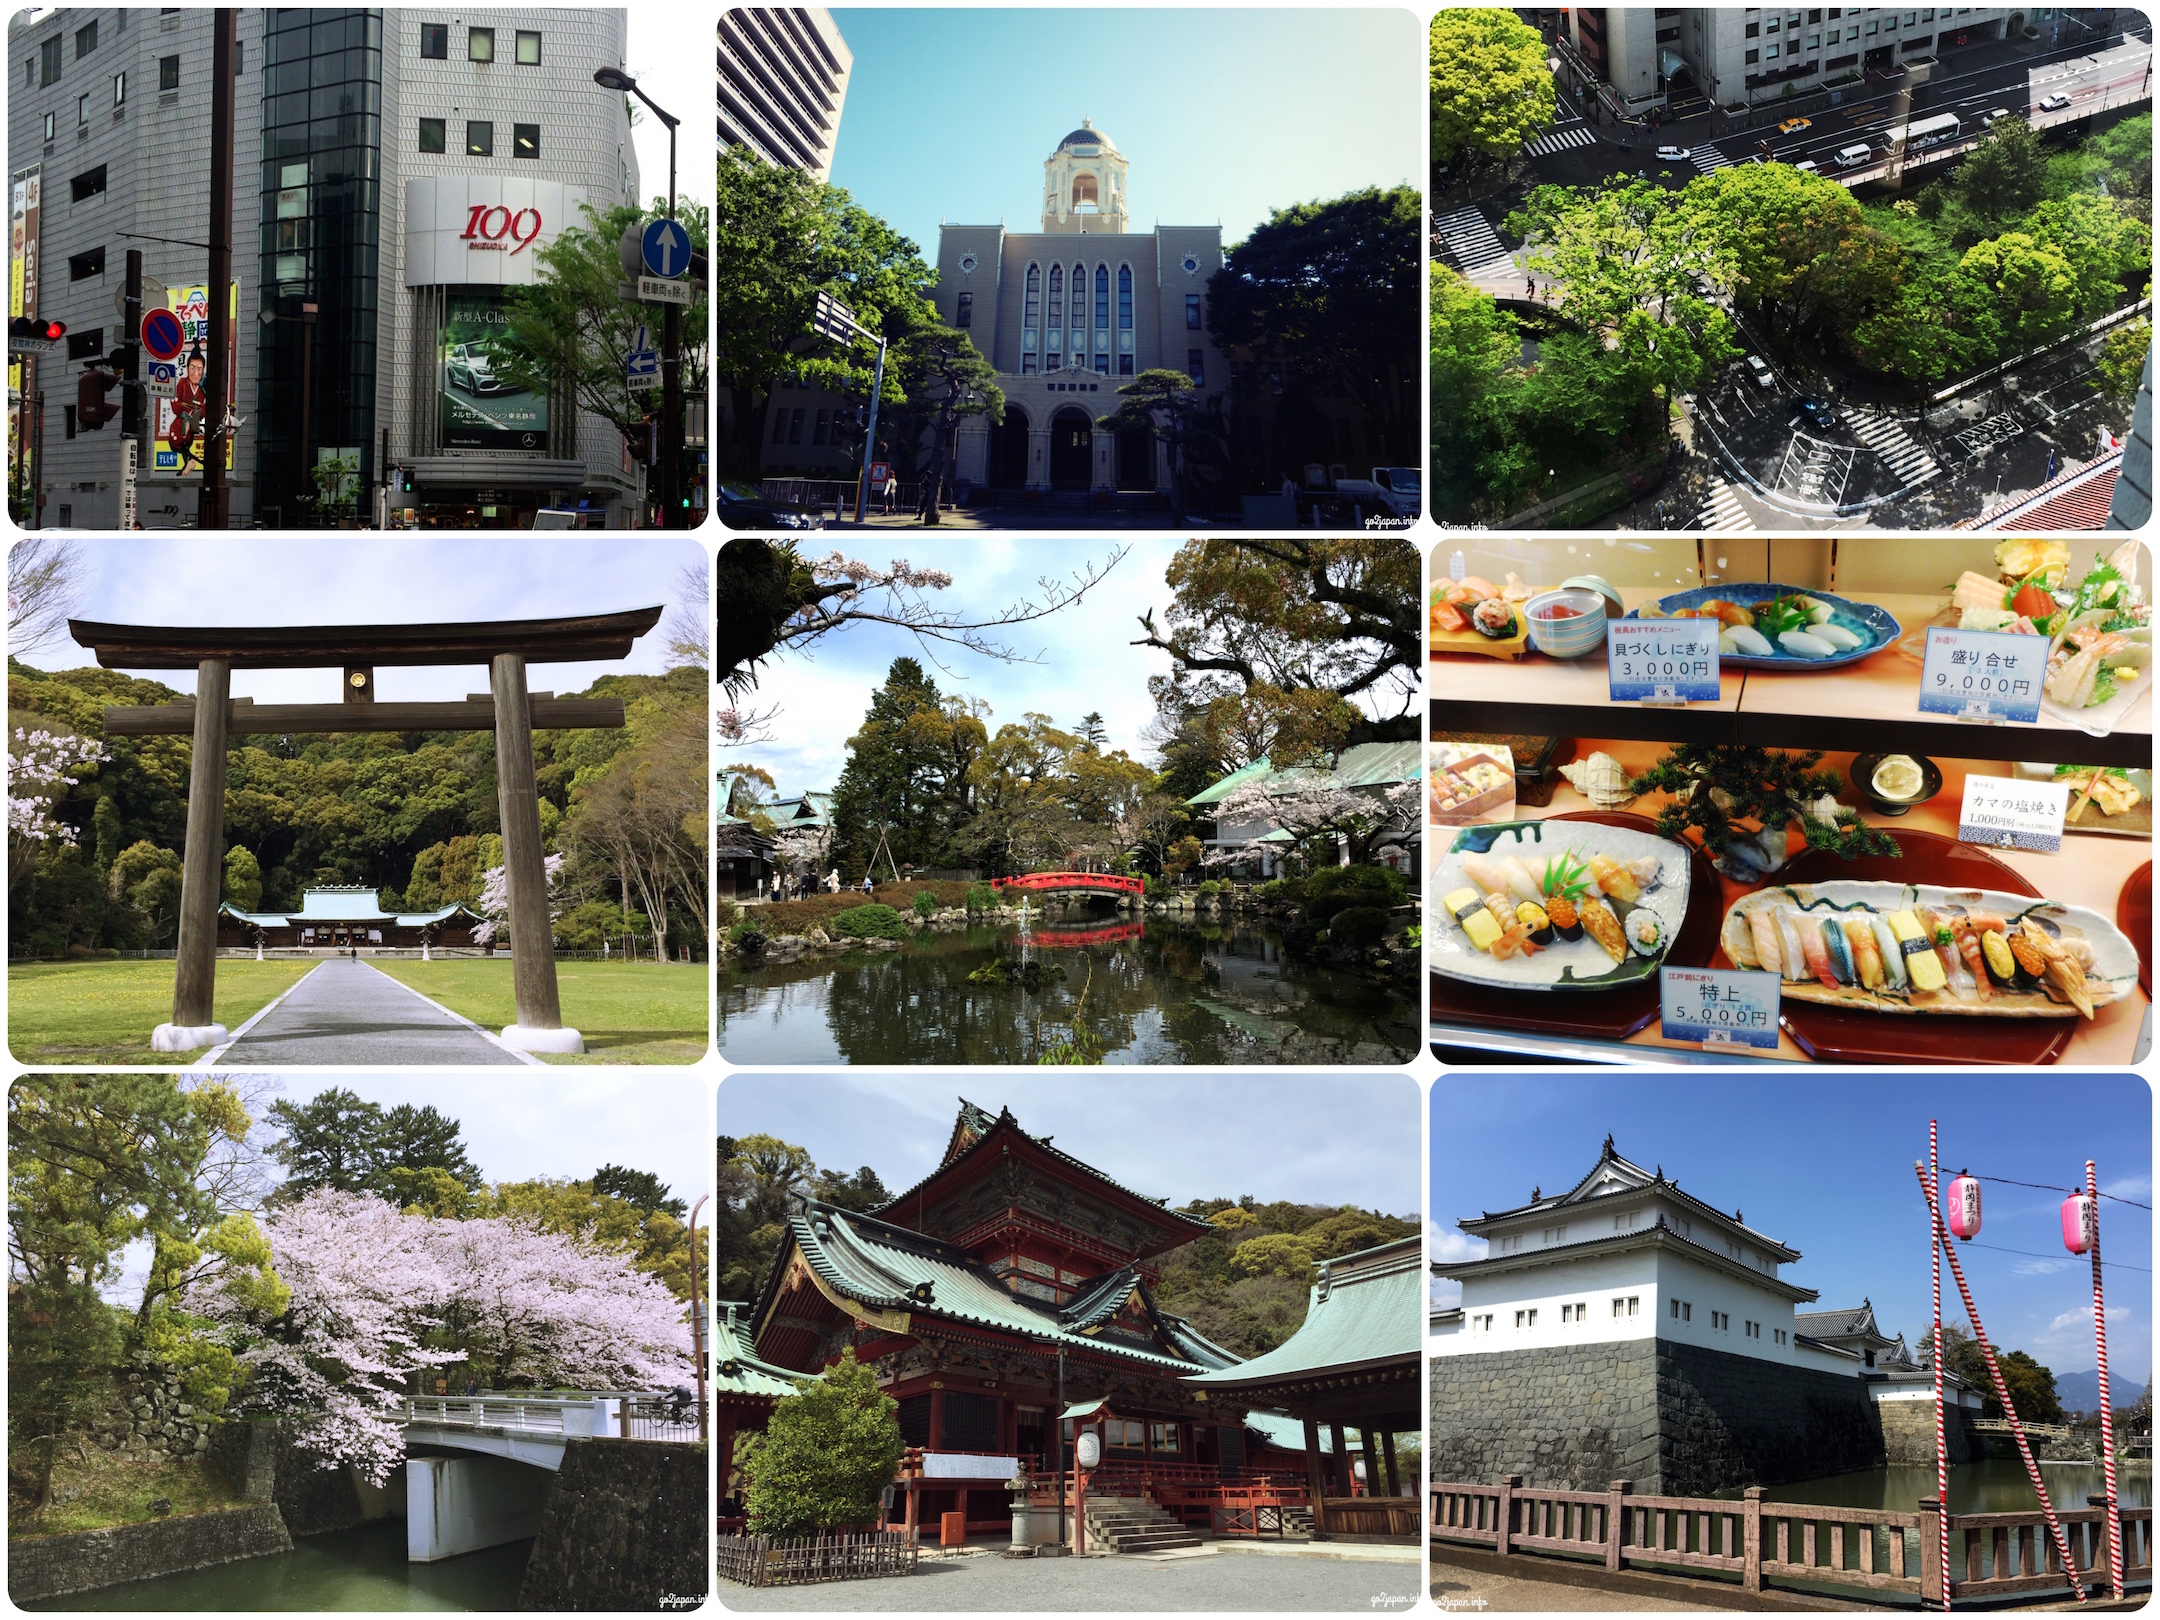 Photo Gallery of my city, Shizuoka